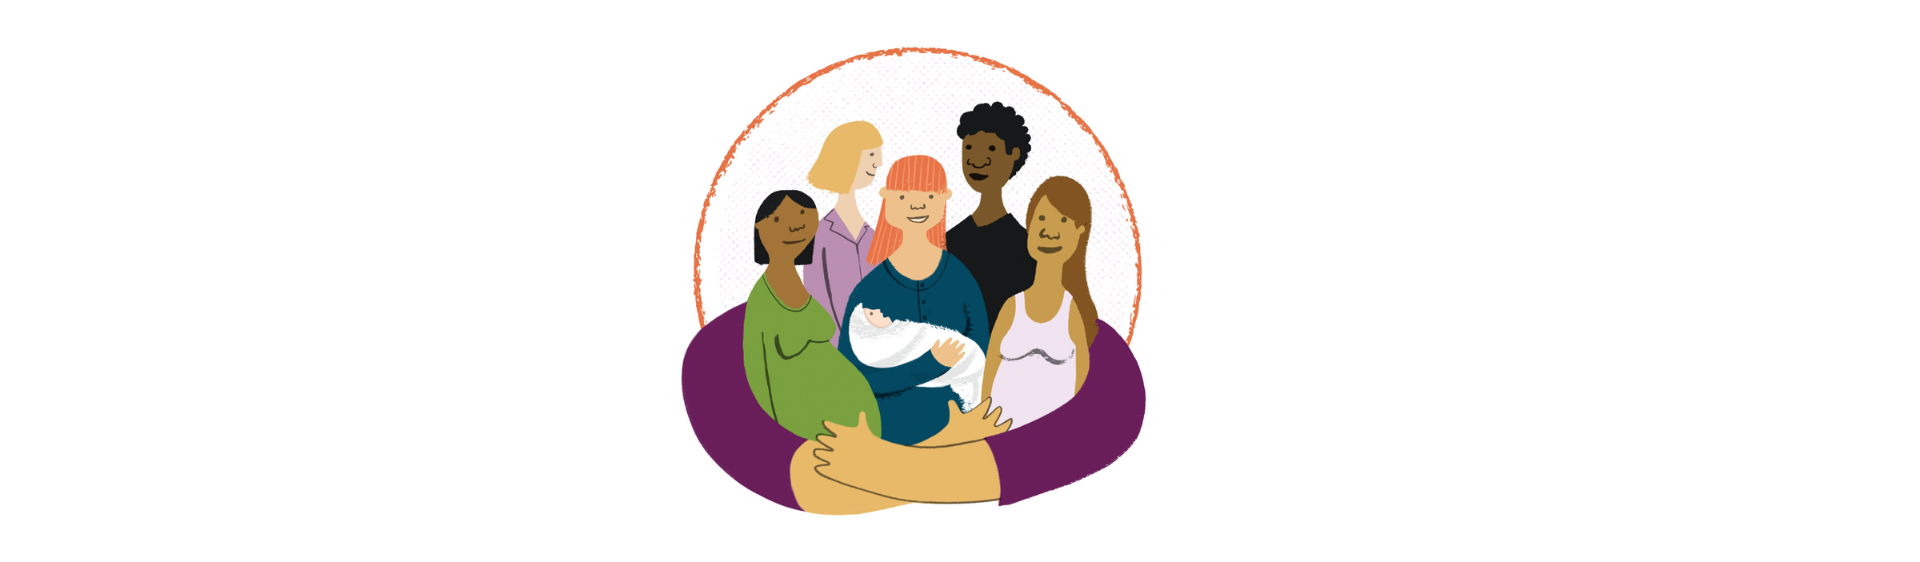 Illustration of a group of women, some pregnant, some holding babies, wrapped in a pair of safe arms